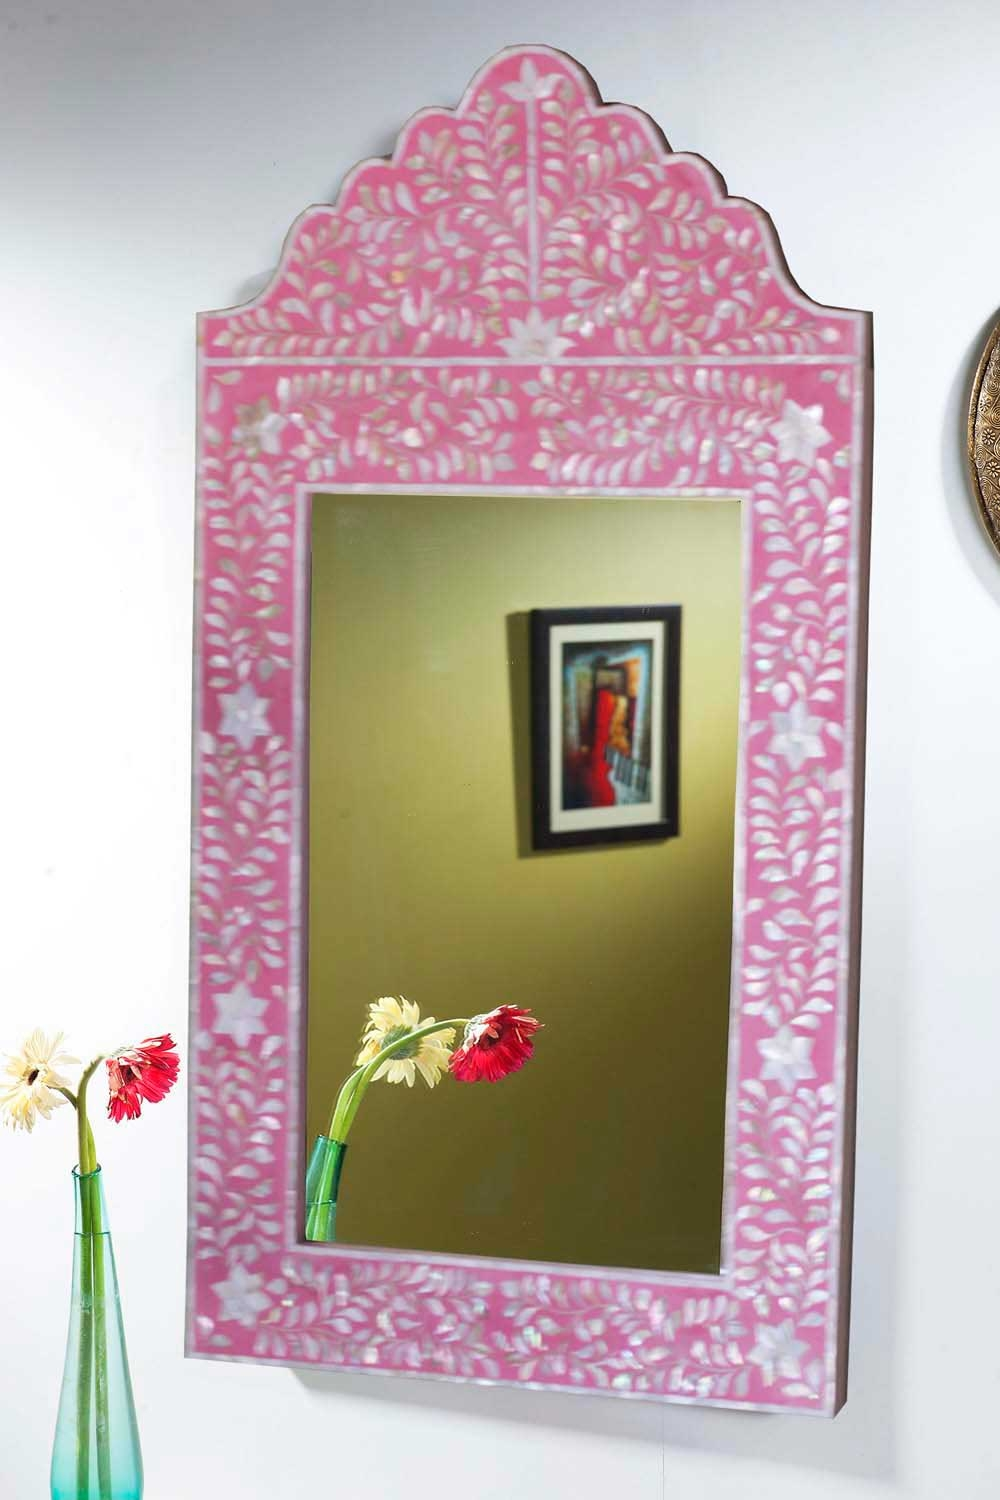 Permalink to Pink Framed Wall Mirror